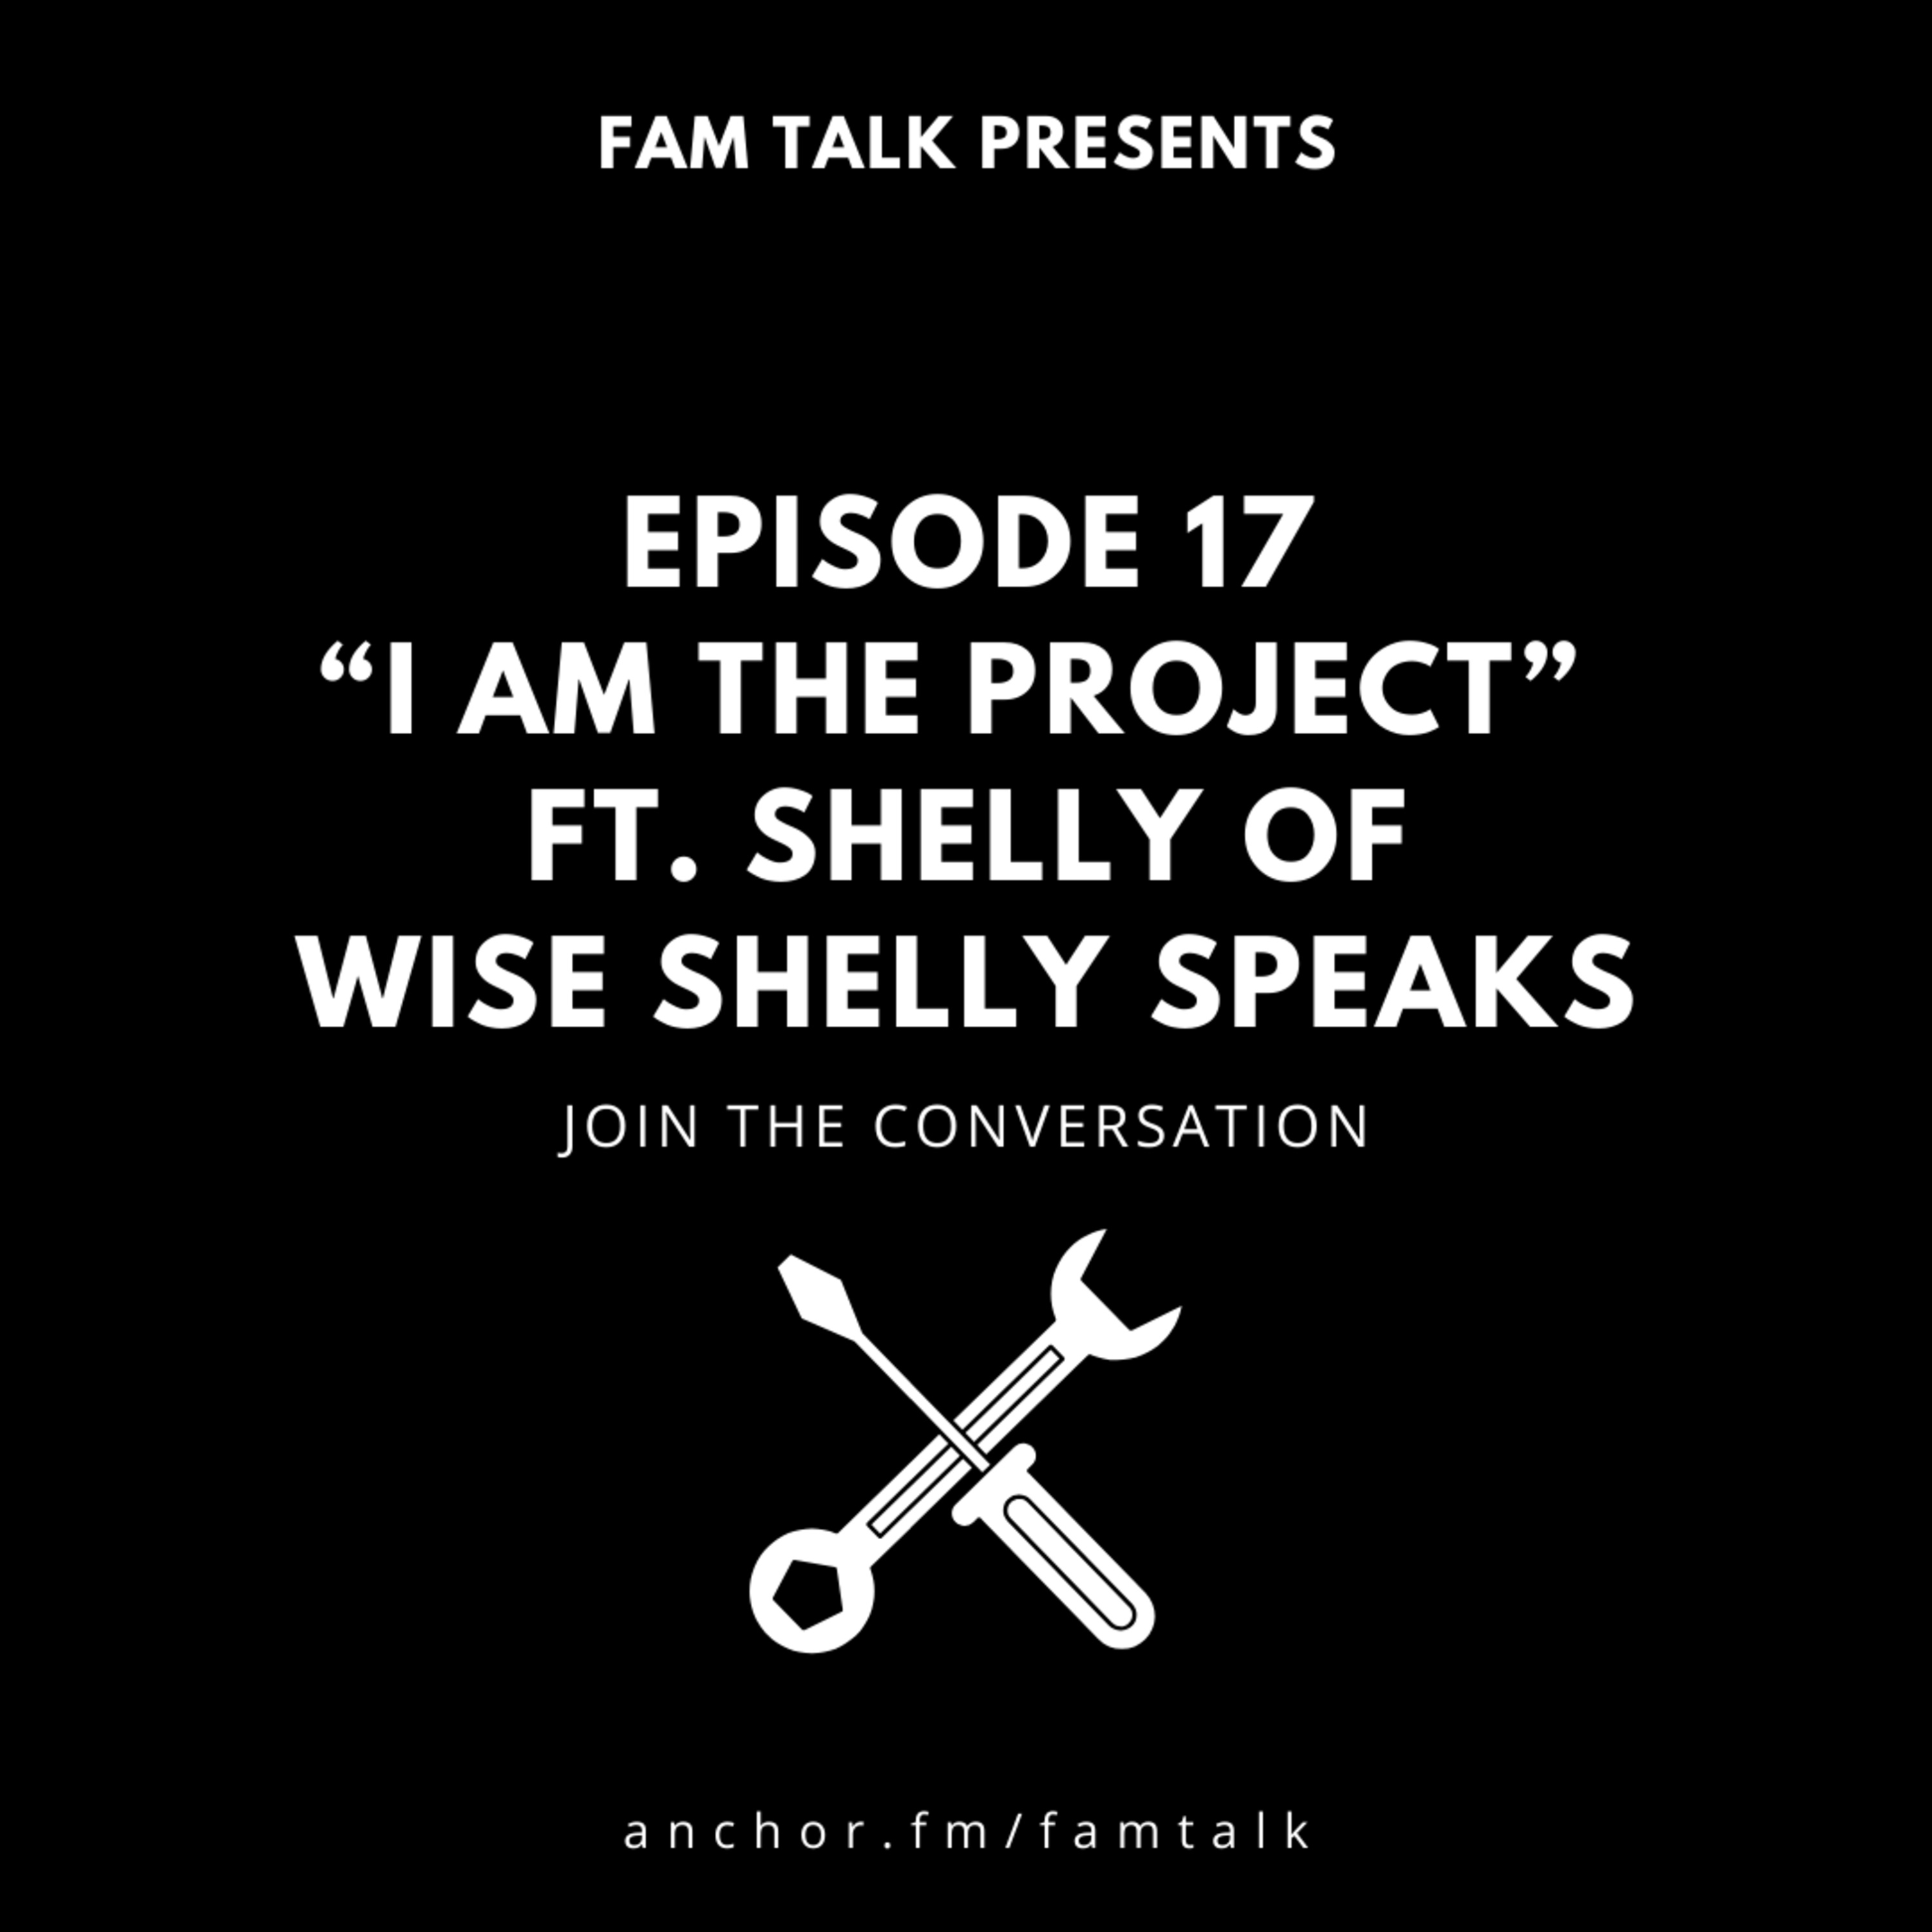 Fam Talk 017 I Am The Project ft. Shelly of Wise Shelly Speaks